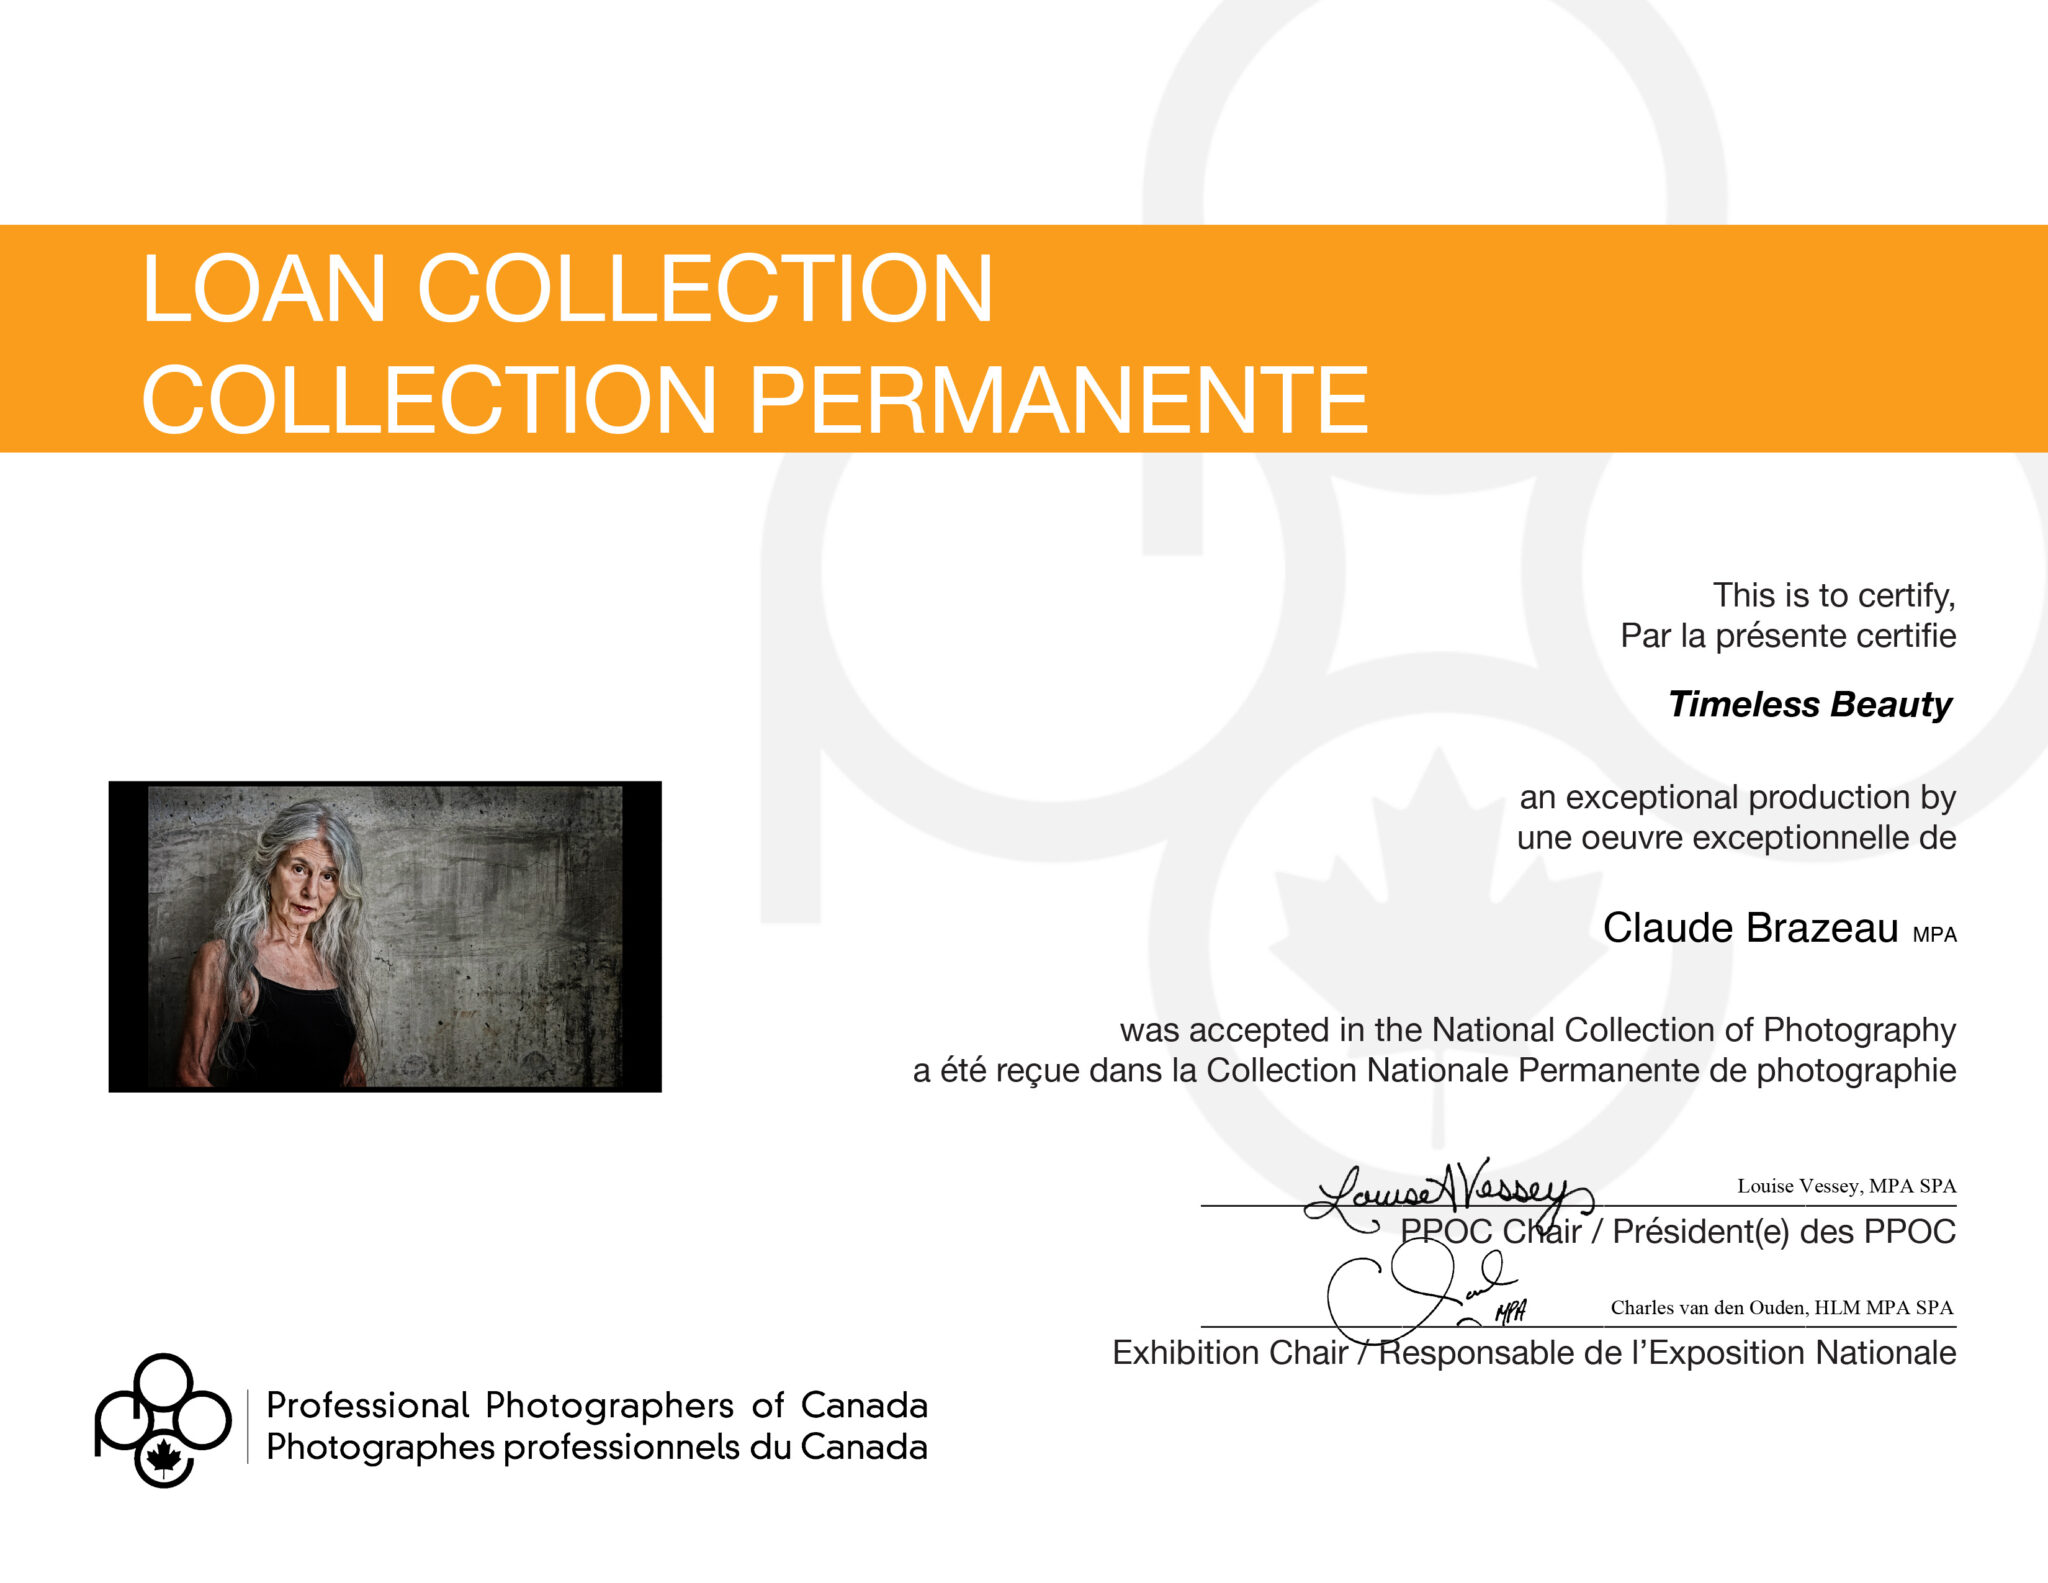 Collection permanente canadienne